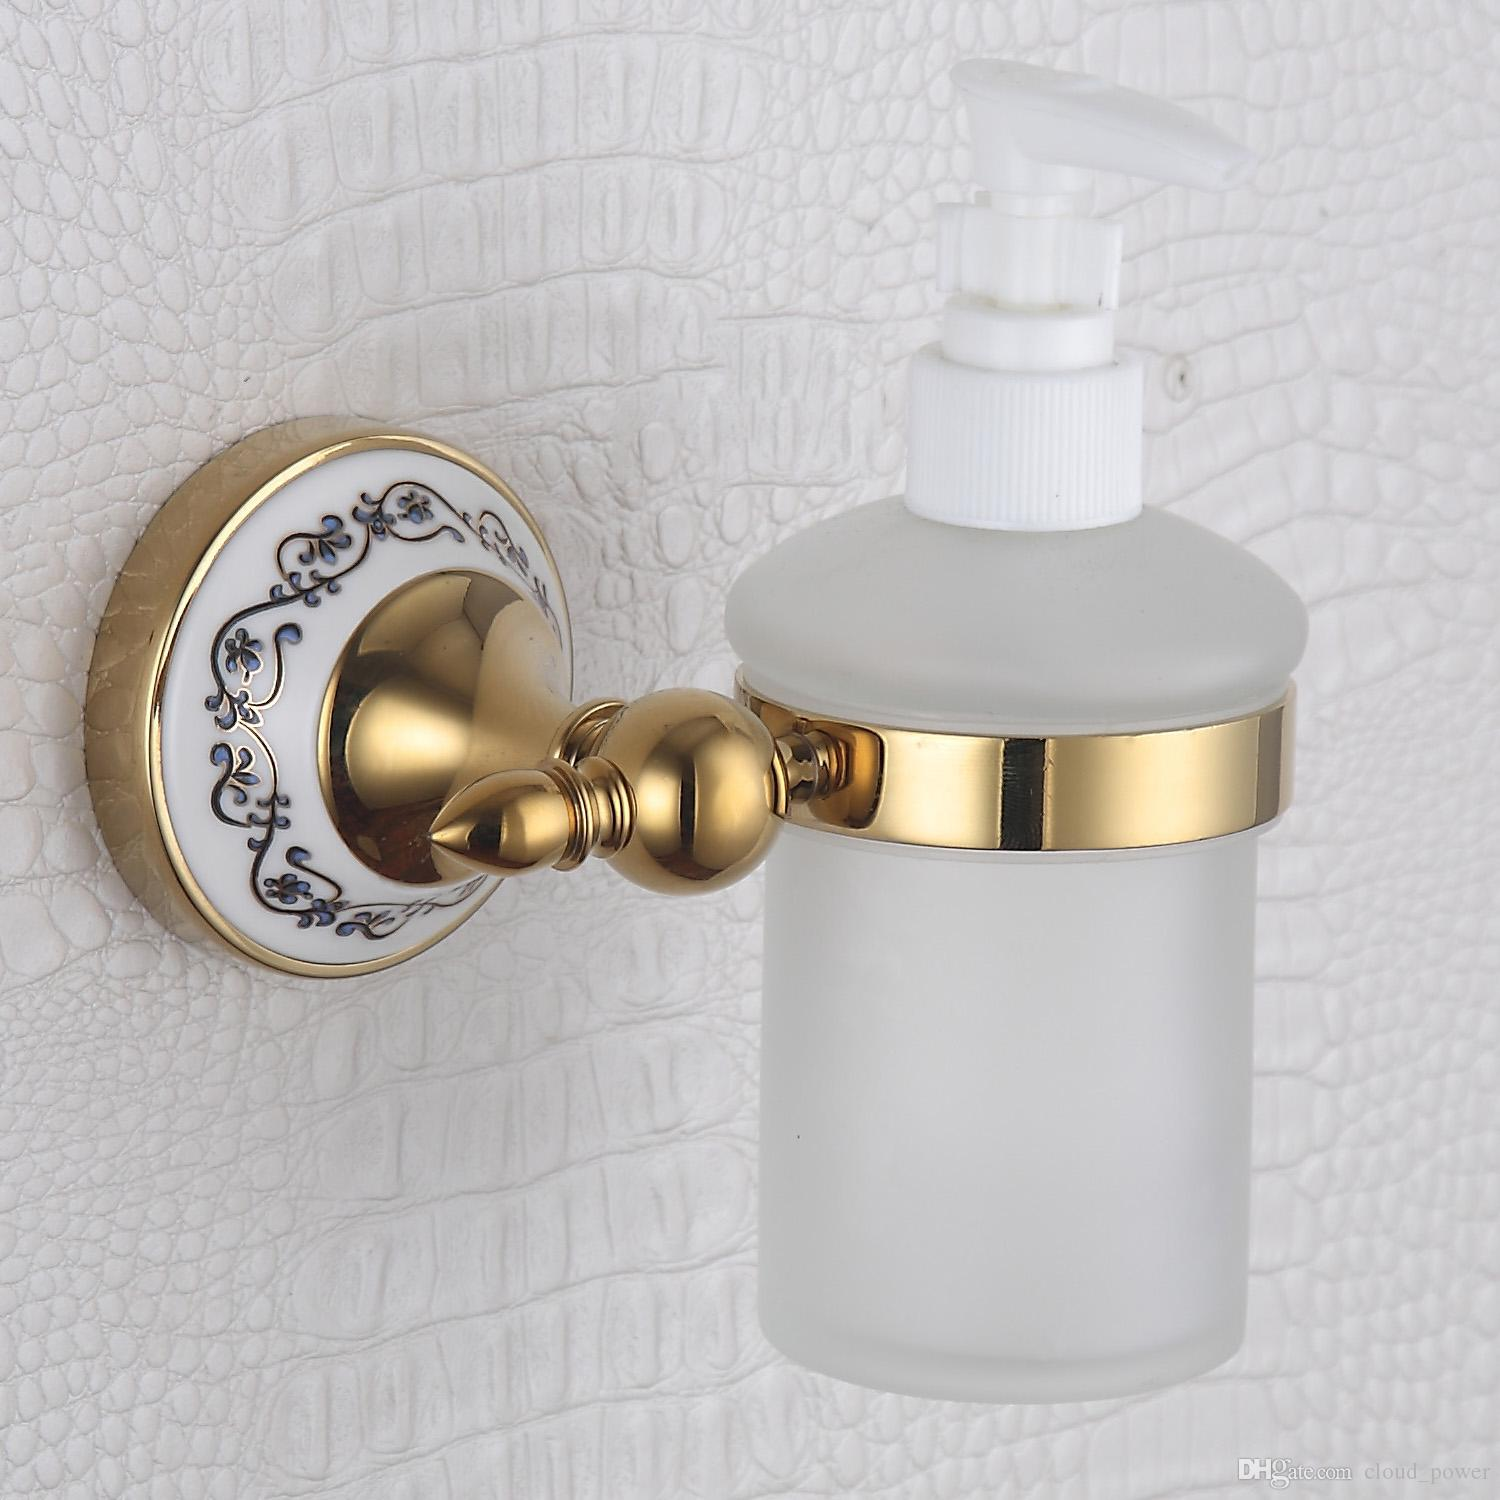 304 Stainless Steel And Copper Liquid Soap Dispenser And Holder